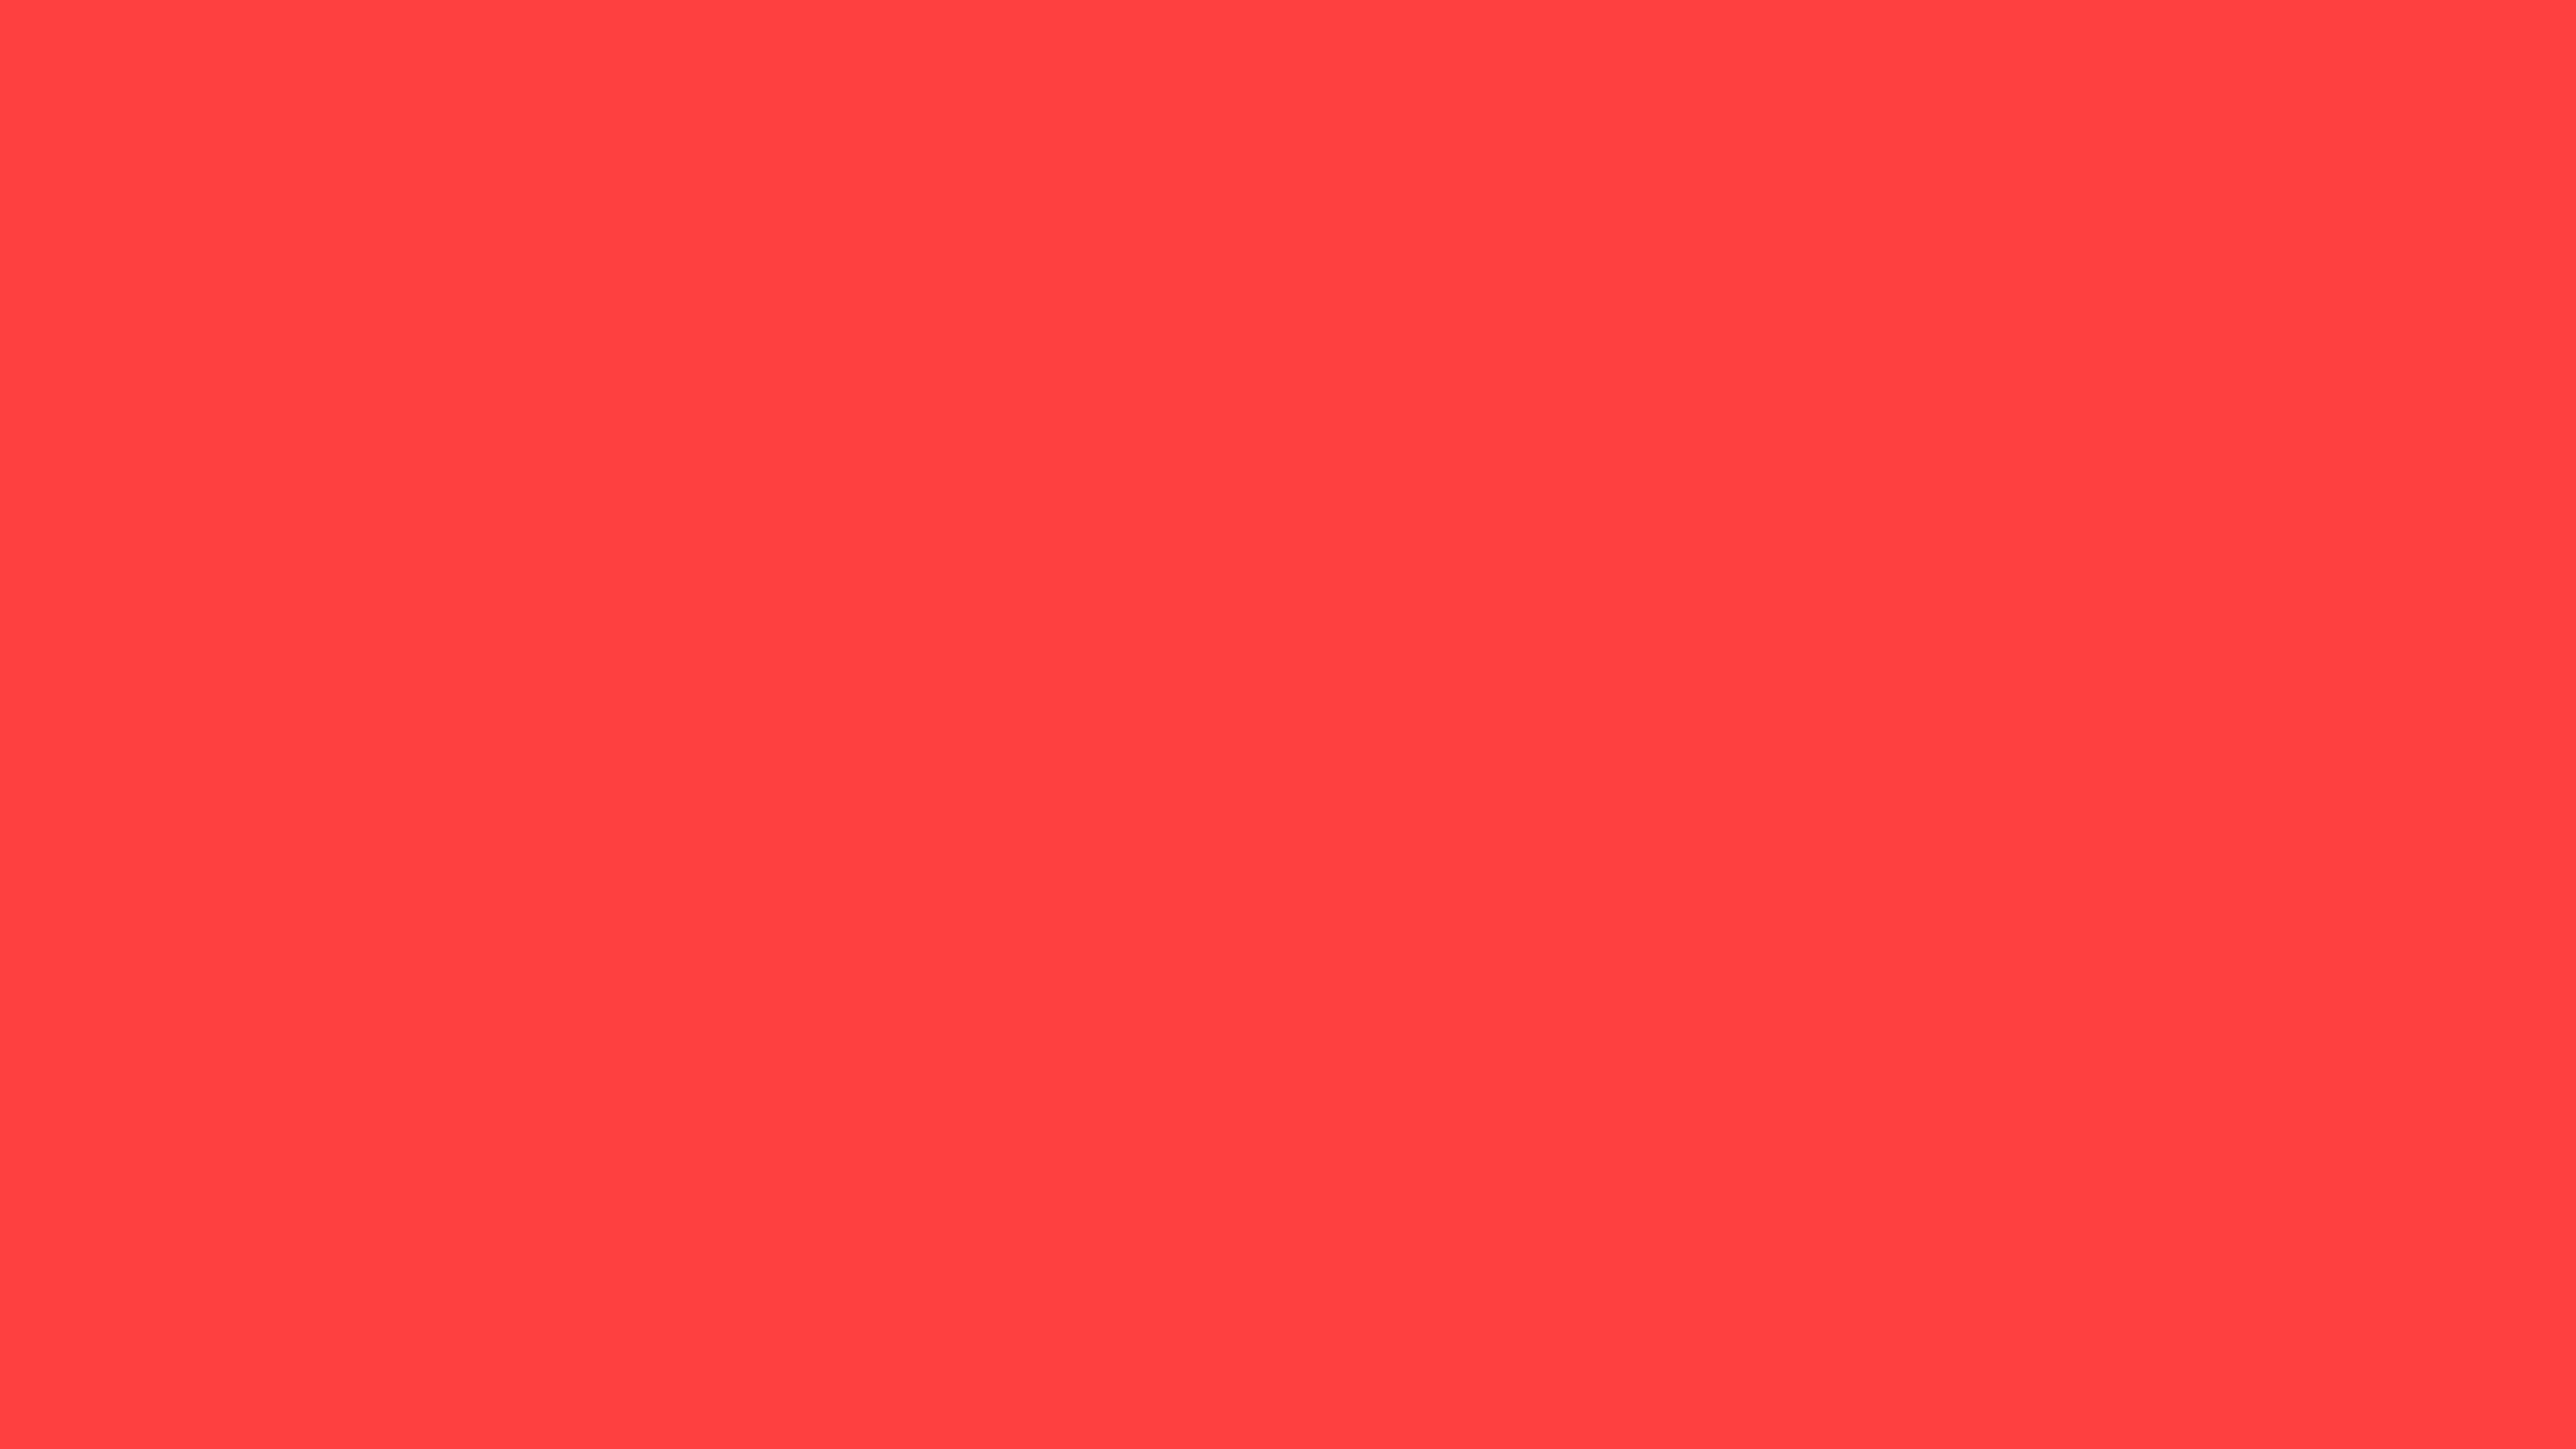 5120x2880 Coral Red Solid Color Background